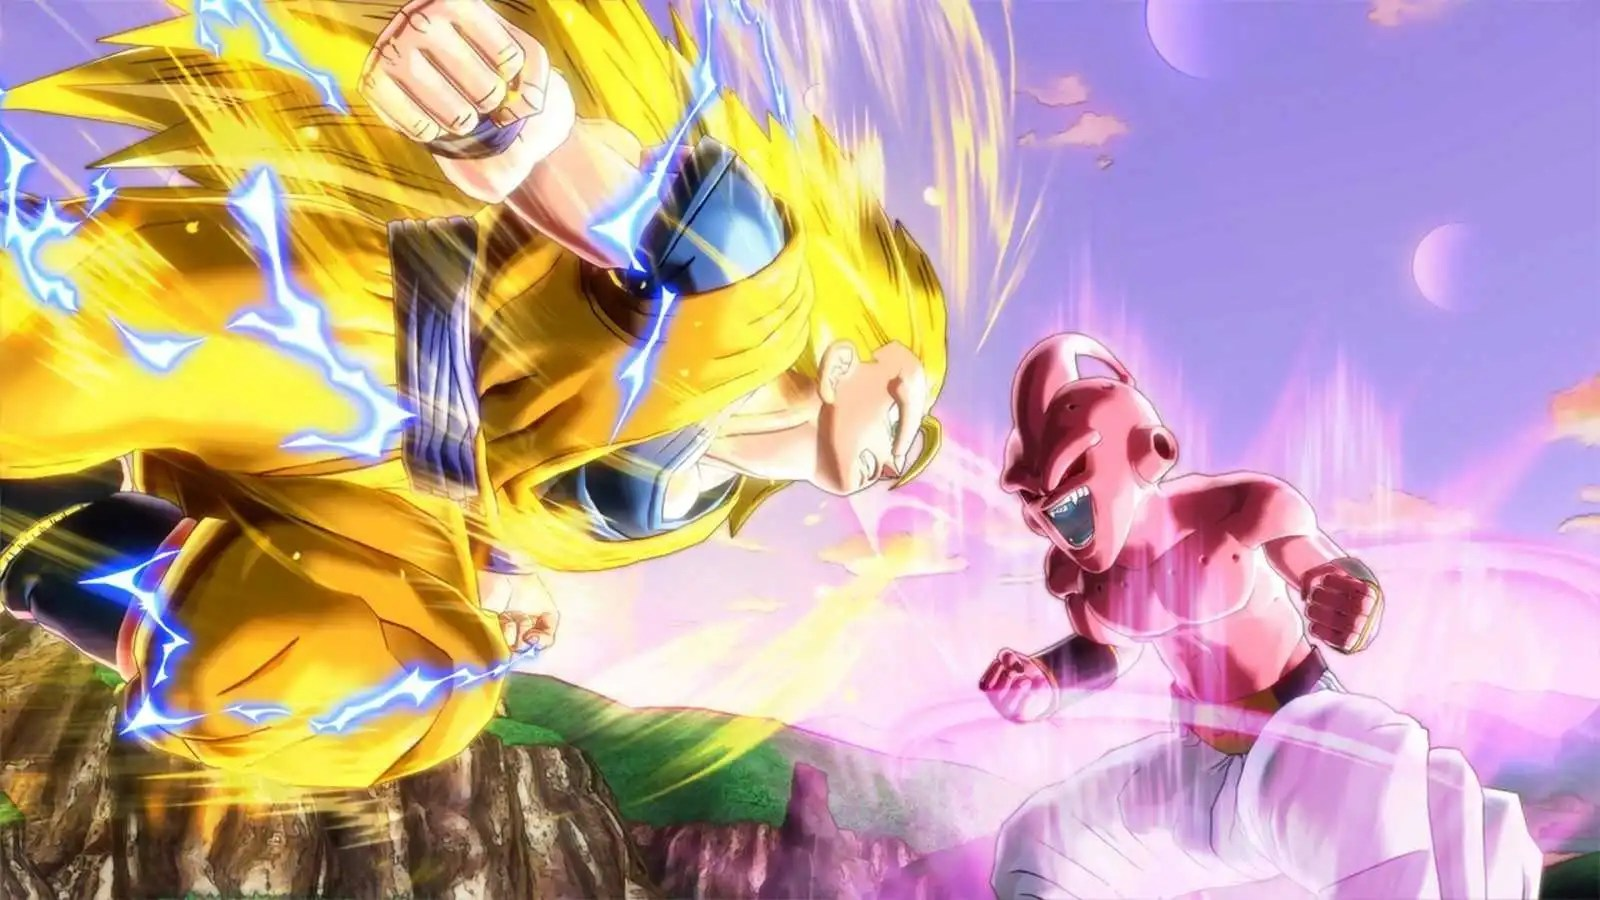 Dragon Ball Super sbarca finalmente sulla TV italiana